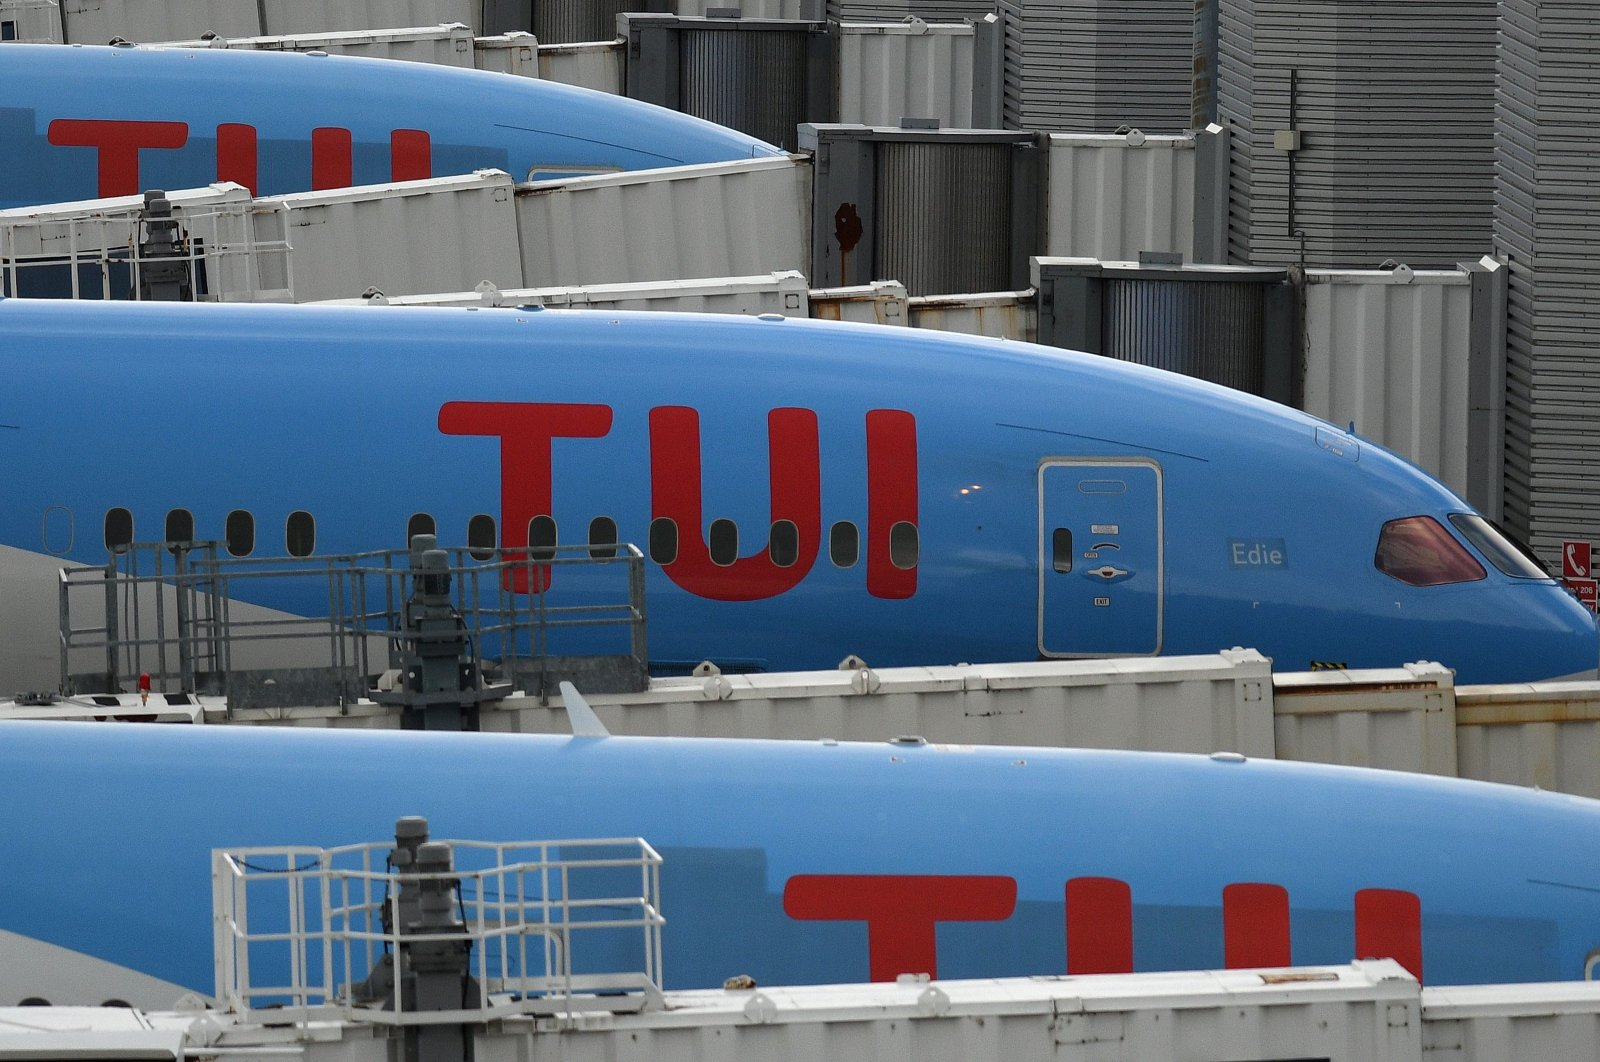 Aircraft operated by German tourism company TUI grounded due to the COVID-19 pandemic on the apron at Manchester Airport in Manchester, north west England, May 1, 2020. (AFP Photo)